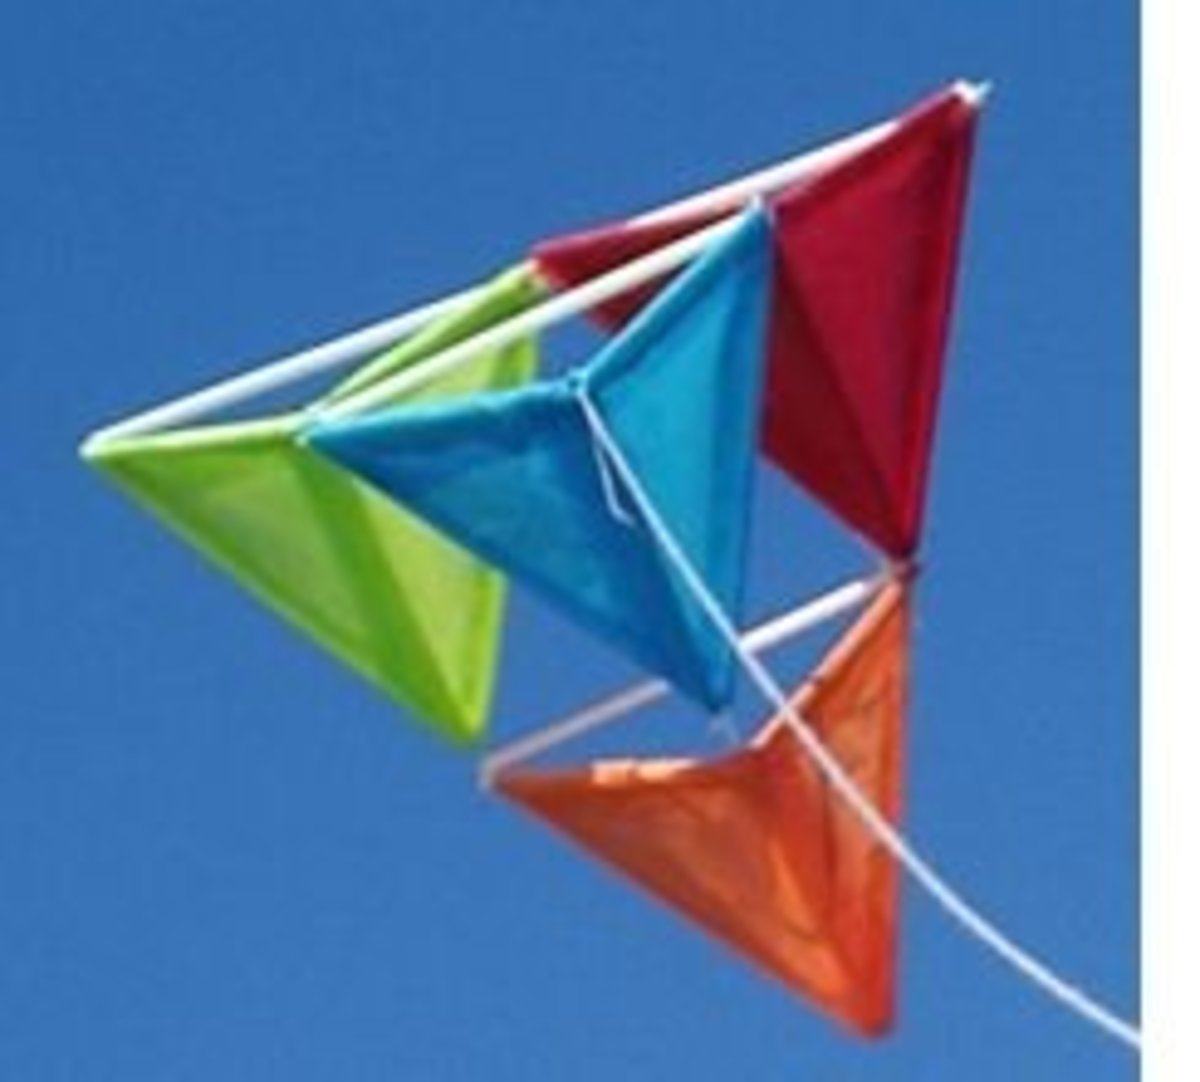 Easy Kitemaking: How to Build a Pyramid Kite | FeltMagnet